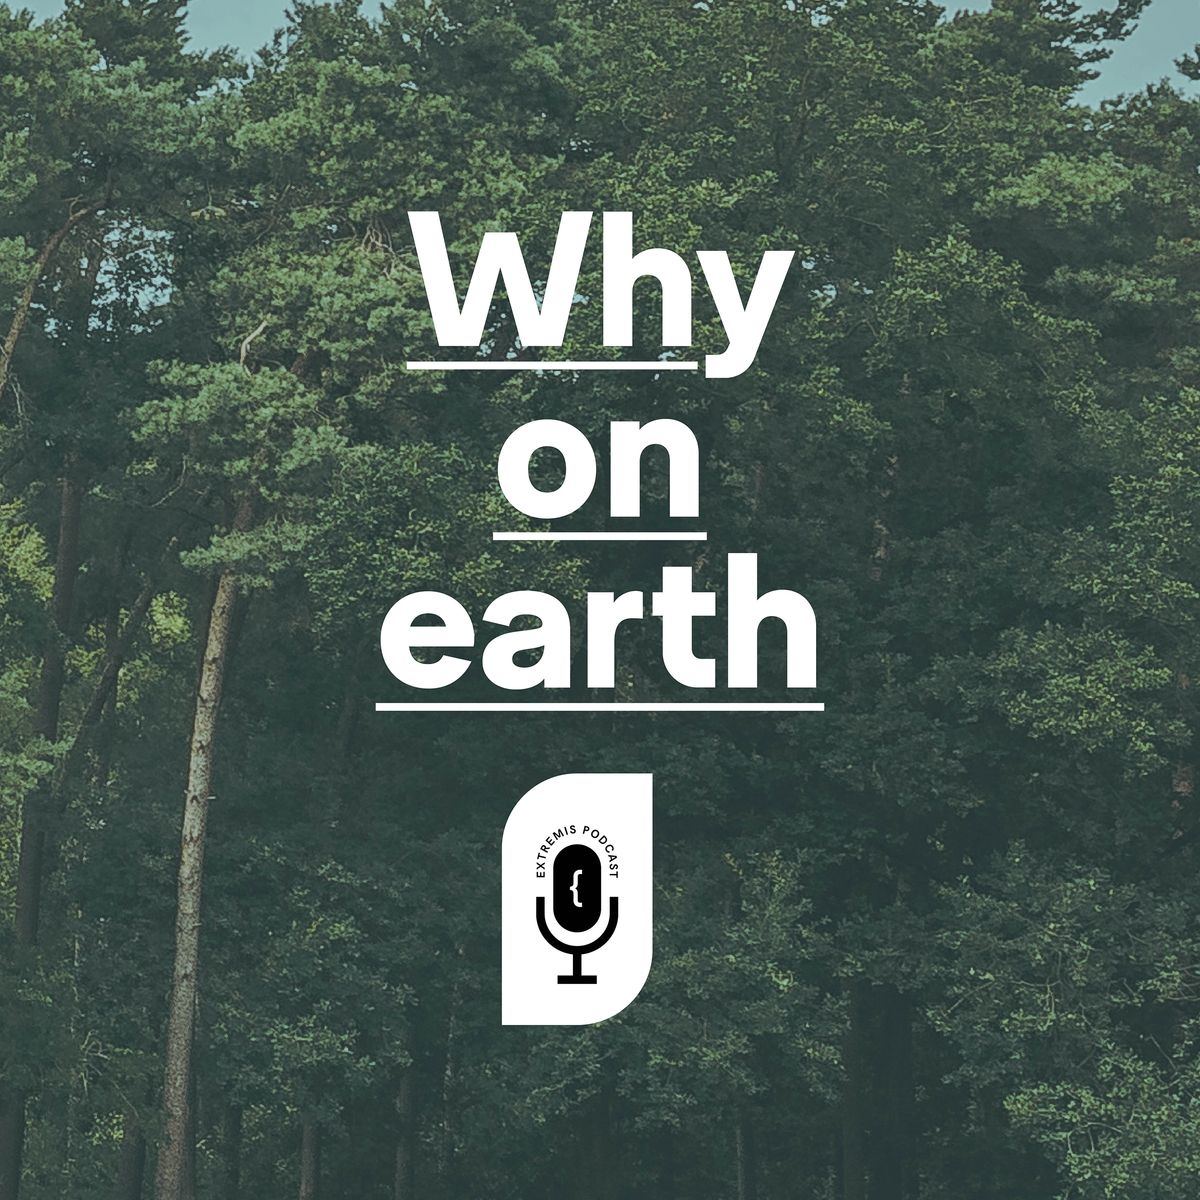 Why on earth podcast series